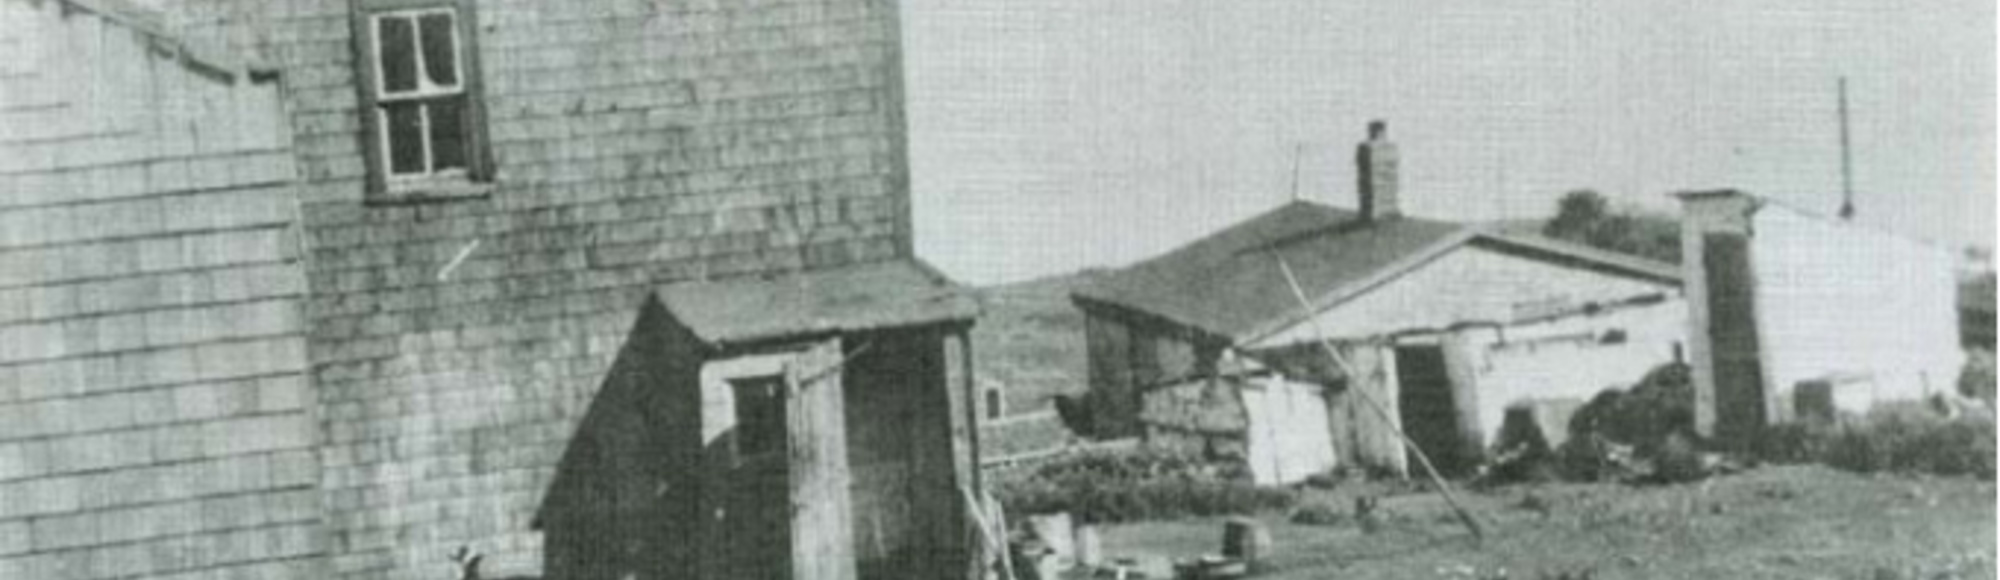 Africville: Canada's Secret Racist History